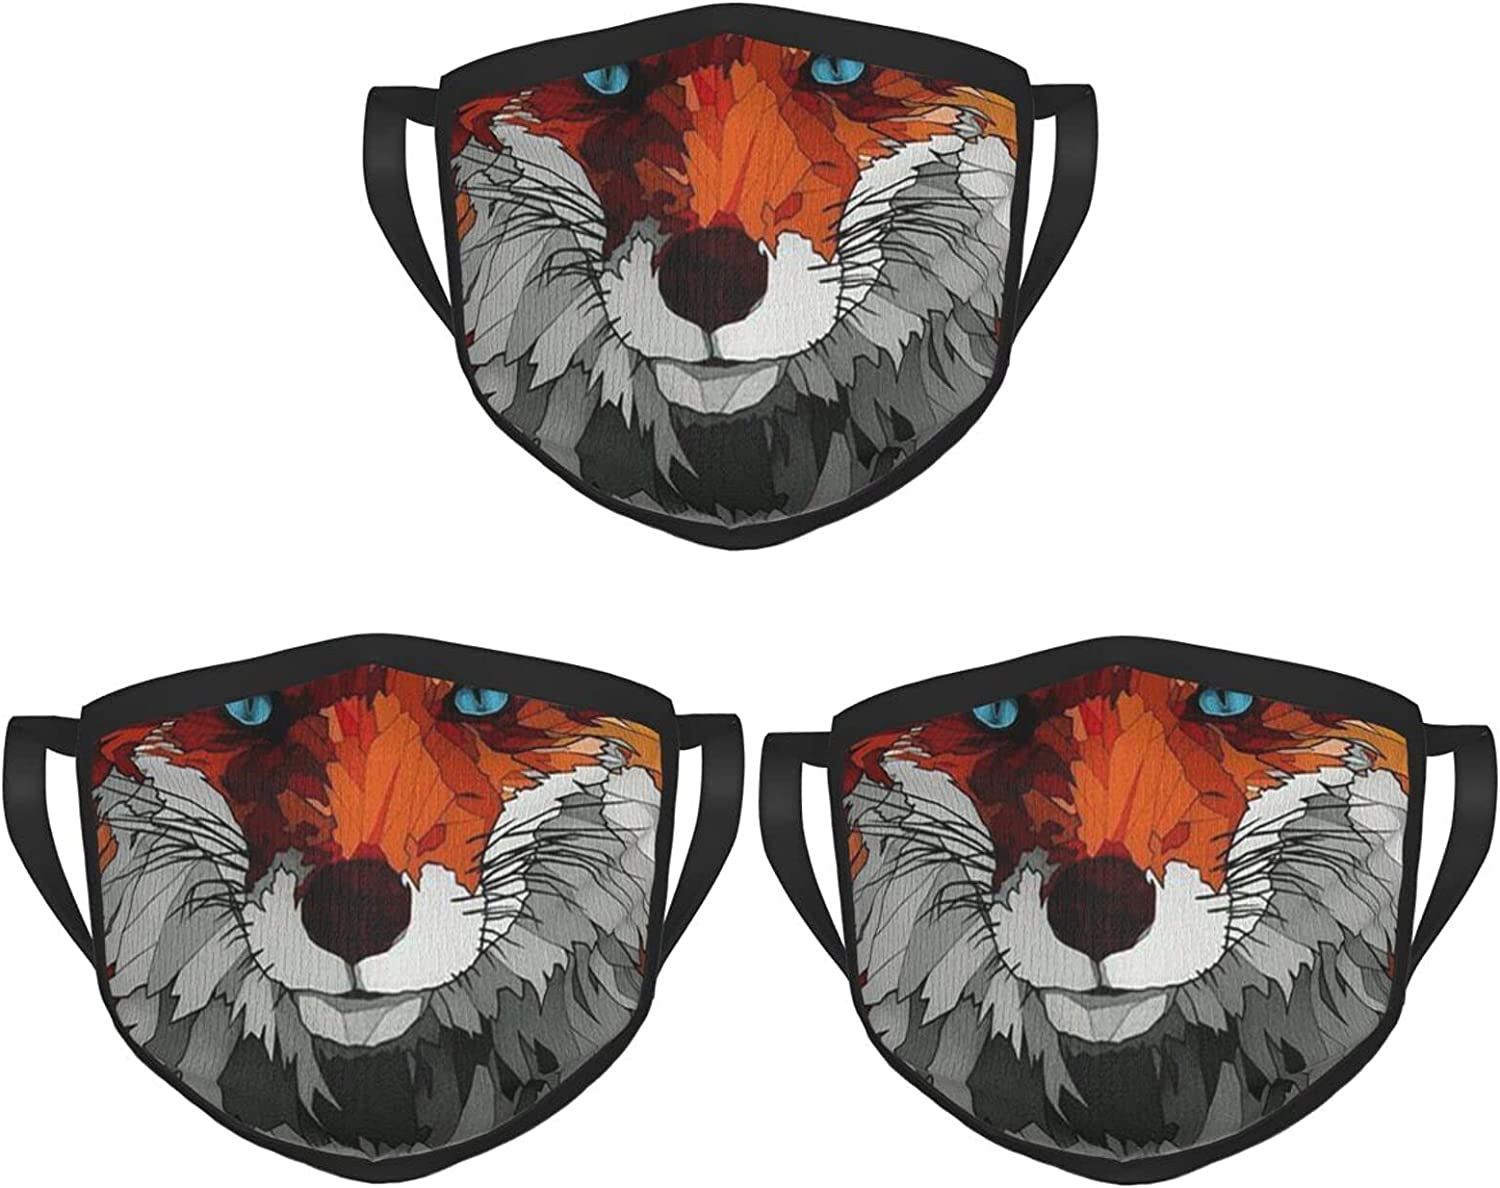 Balaclava Earmuffs Fox Animal Art Inspiration Face Mouth Cover Mask Reusable Windproof Scarf Towel Cover Headwrap